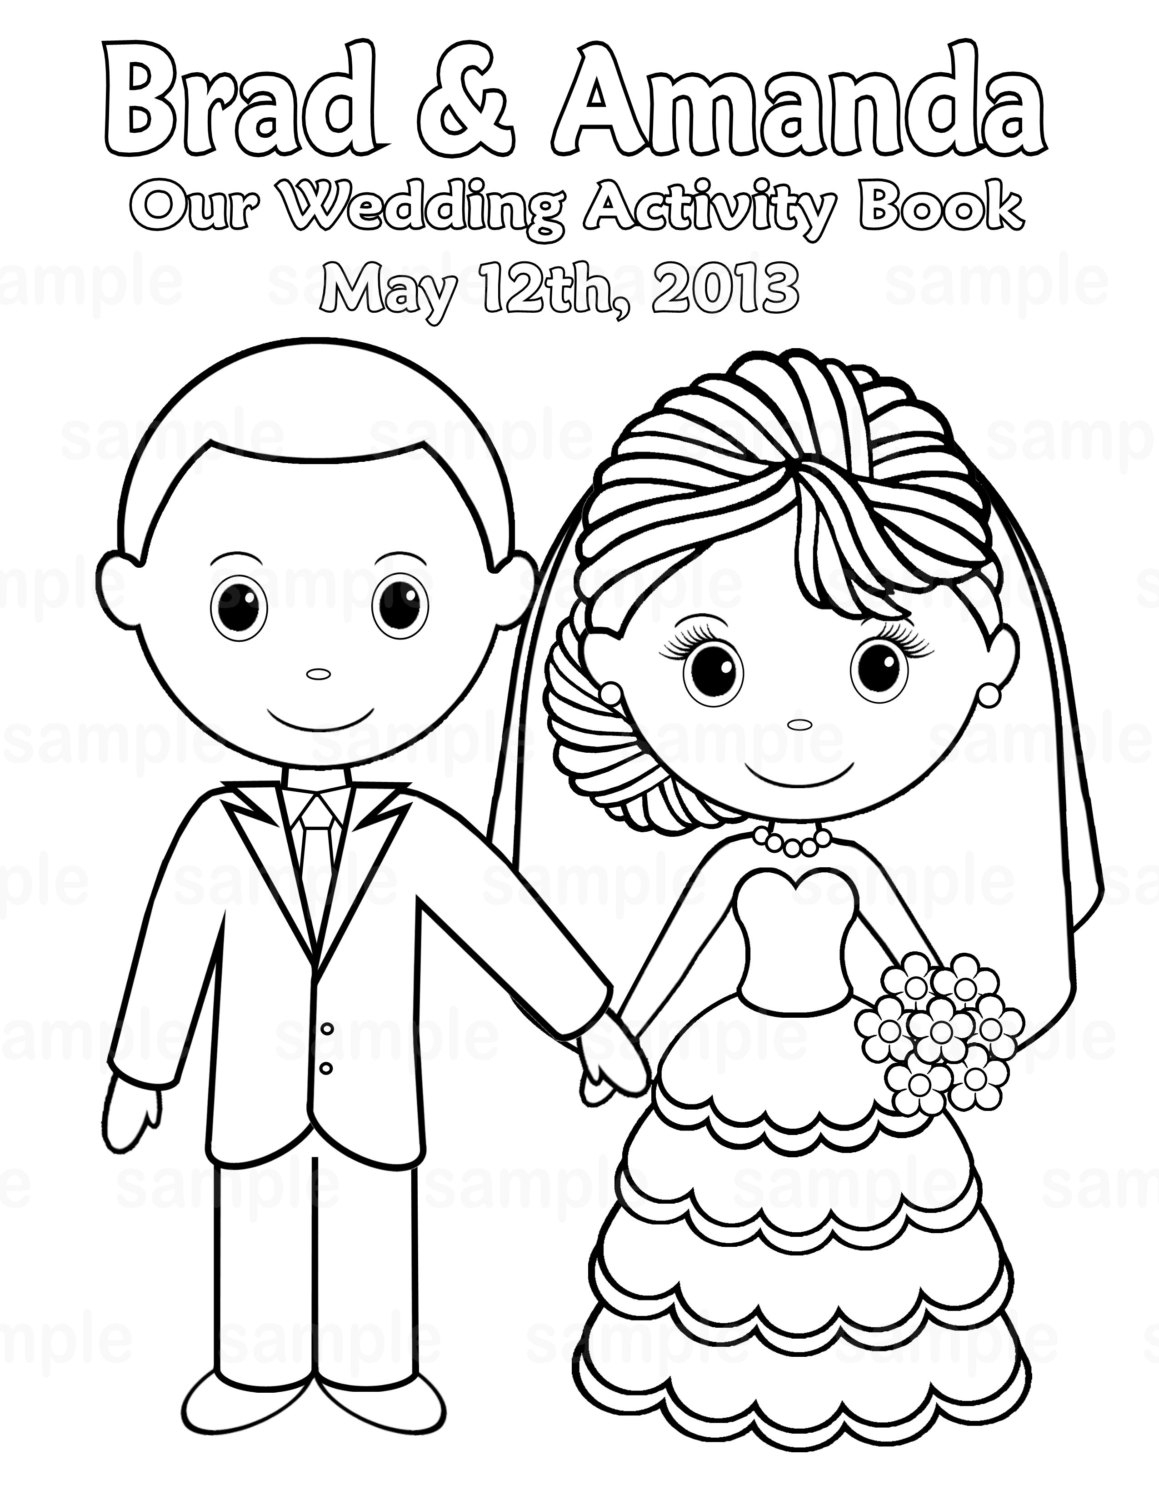 Coloring Pages : Kidsing Coloring Book Fantastic Pdfkids - Wedding Coloring Book Free Printable